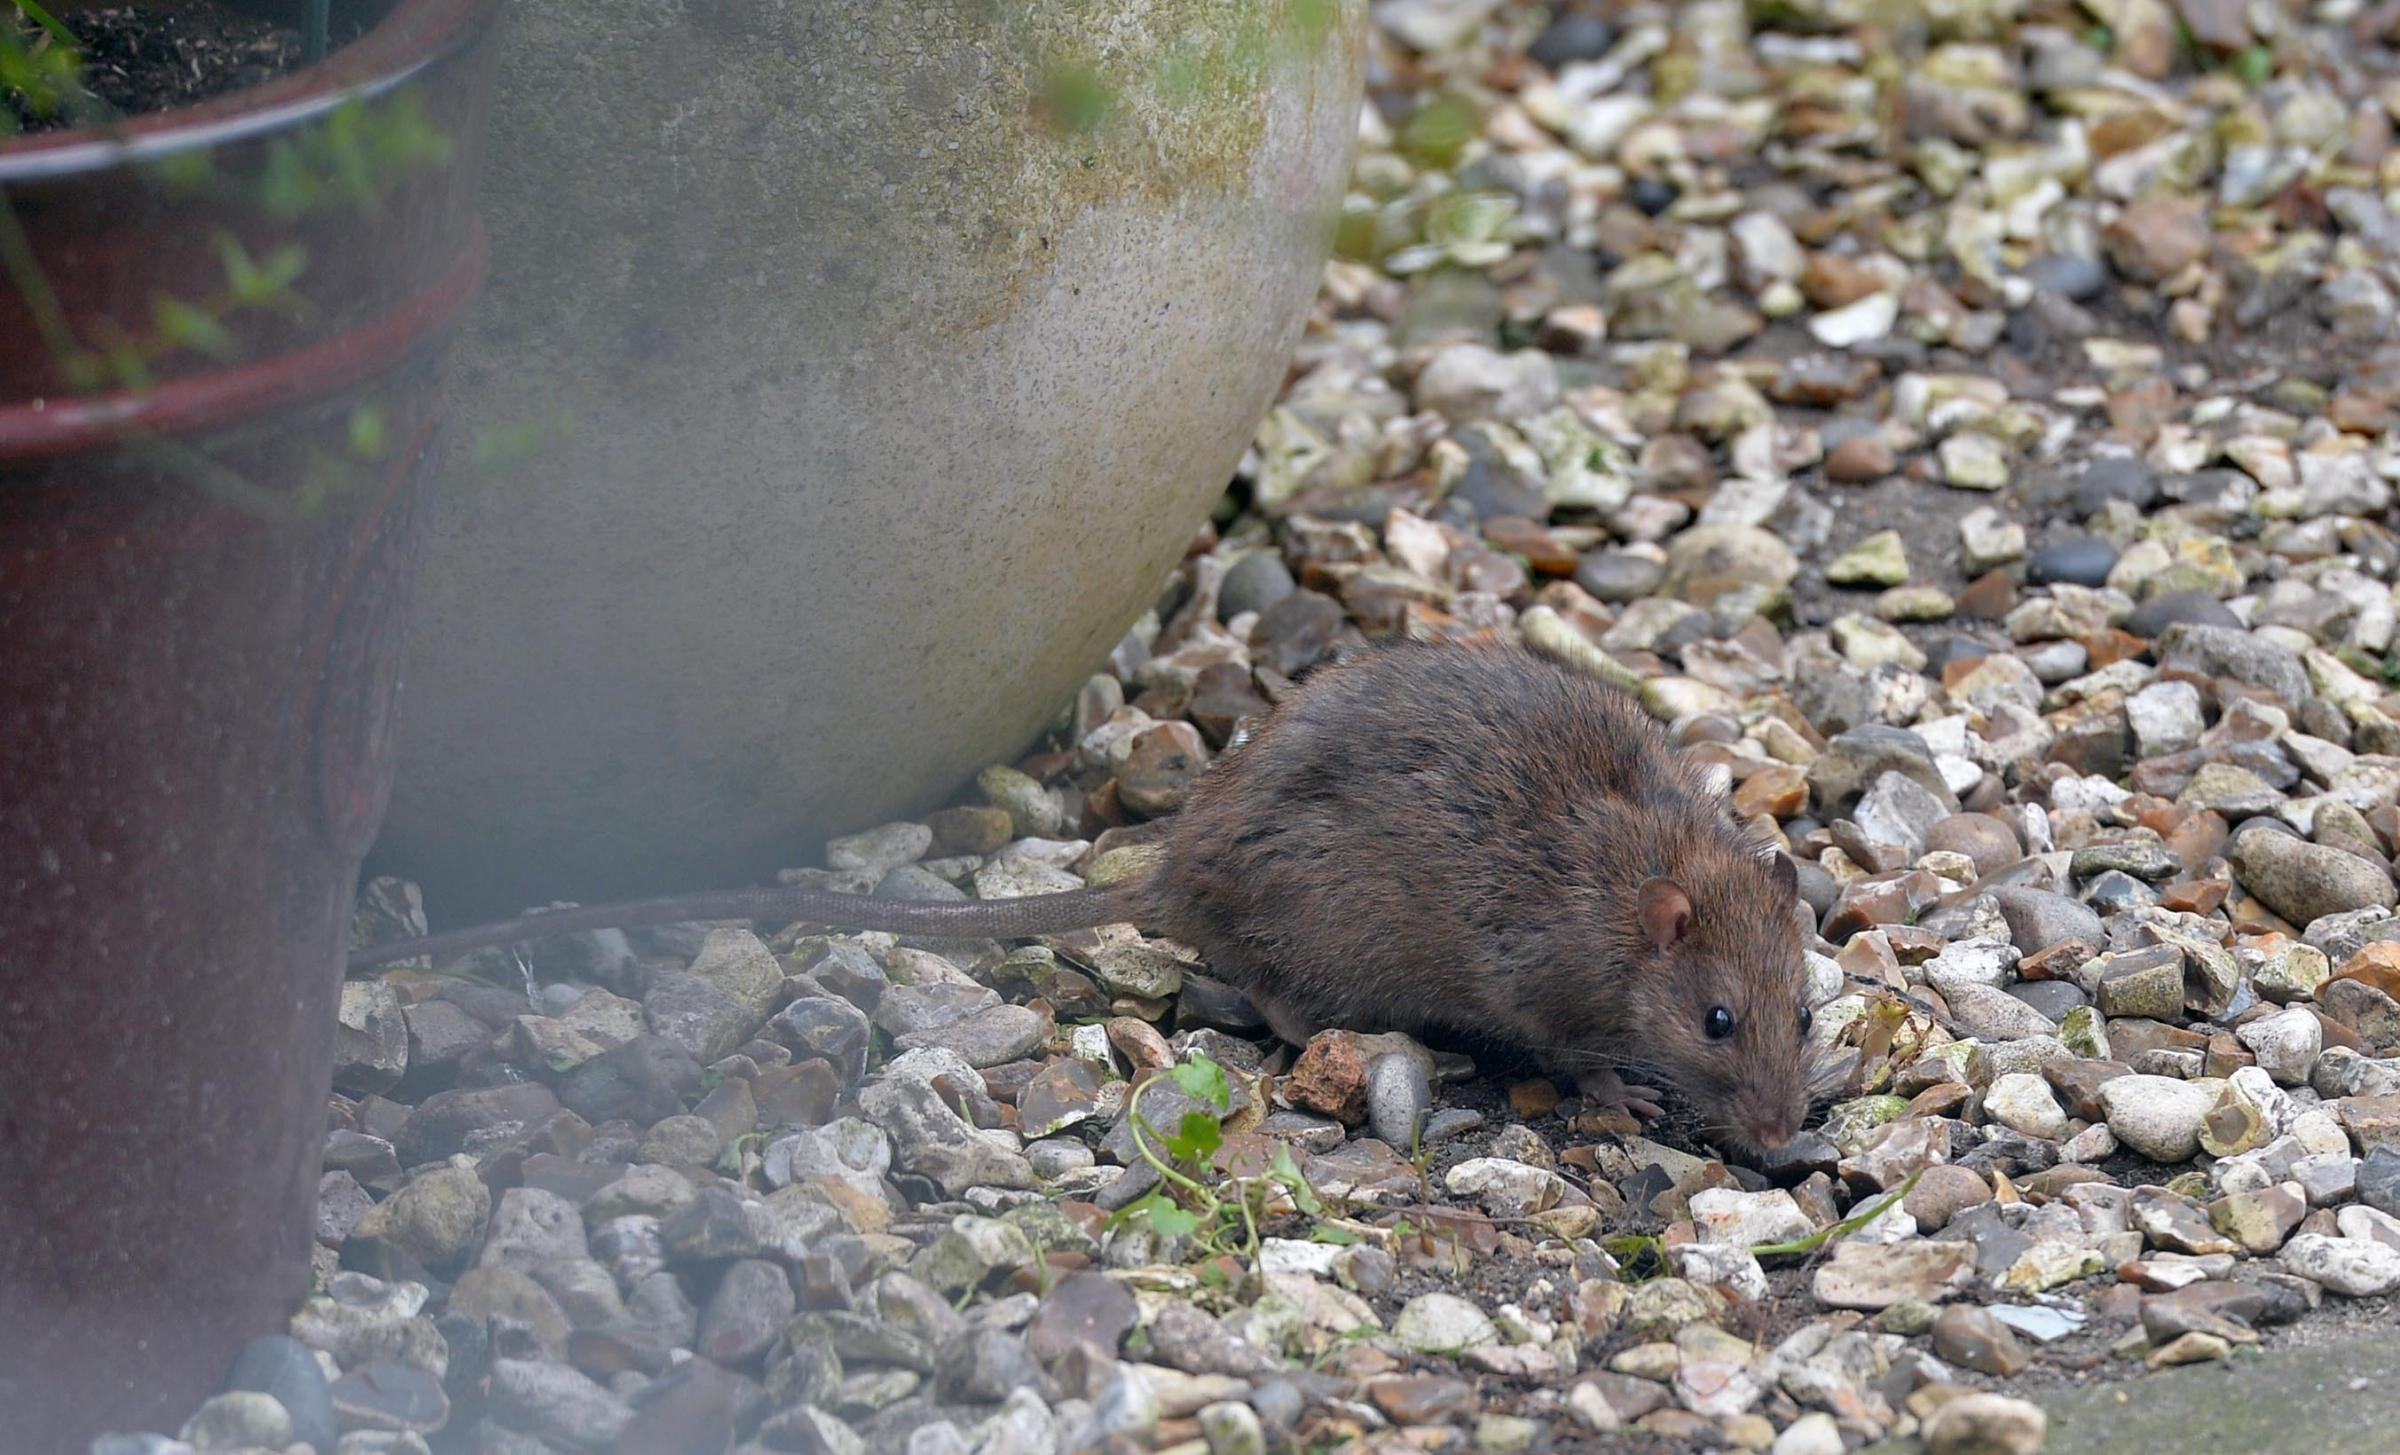 VERMIN: One of the many rats coming from the abandoned Chinese takeaway